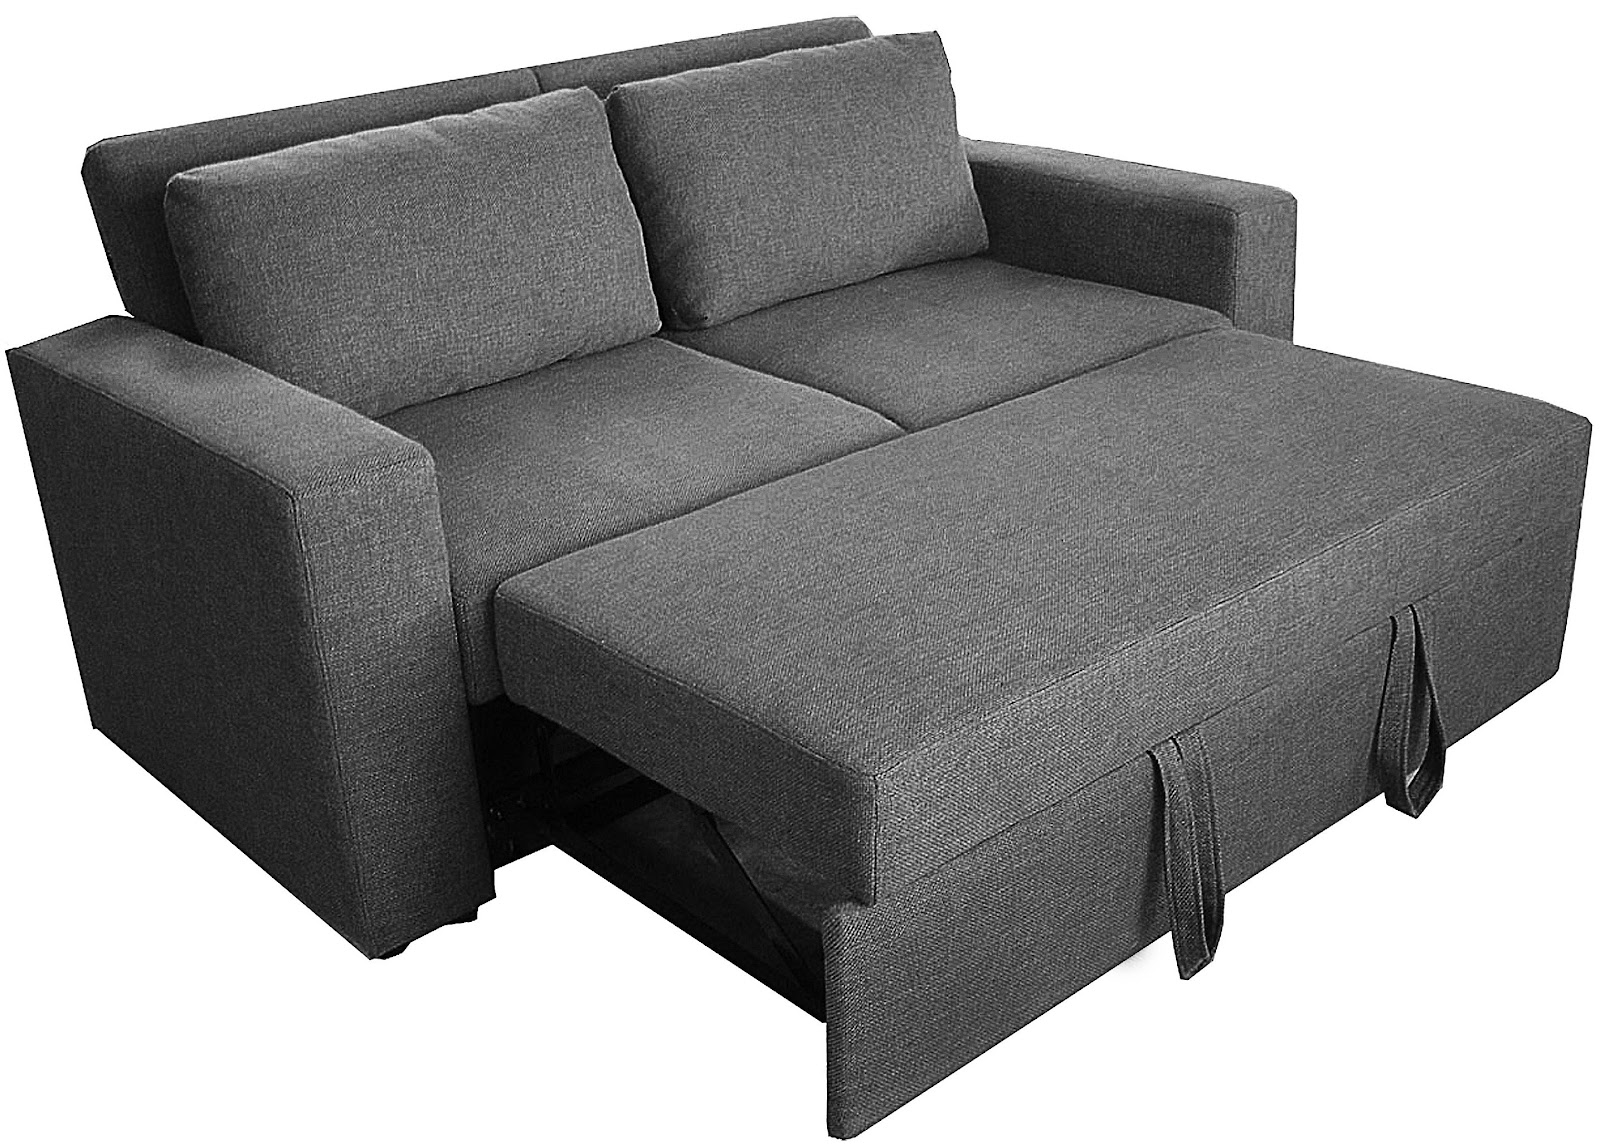 Pull Out Sofa Bed Leather 1600 x 1145